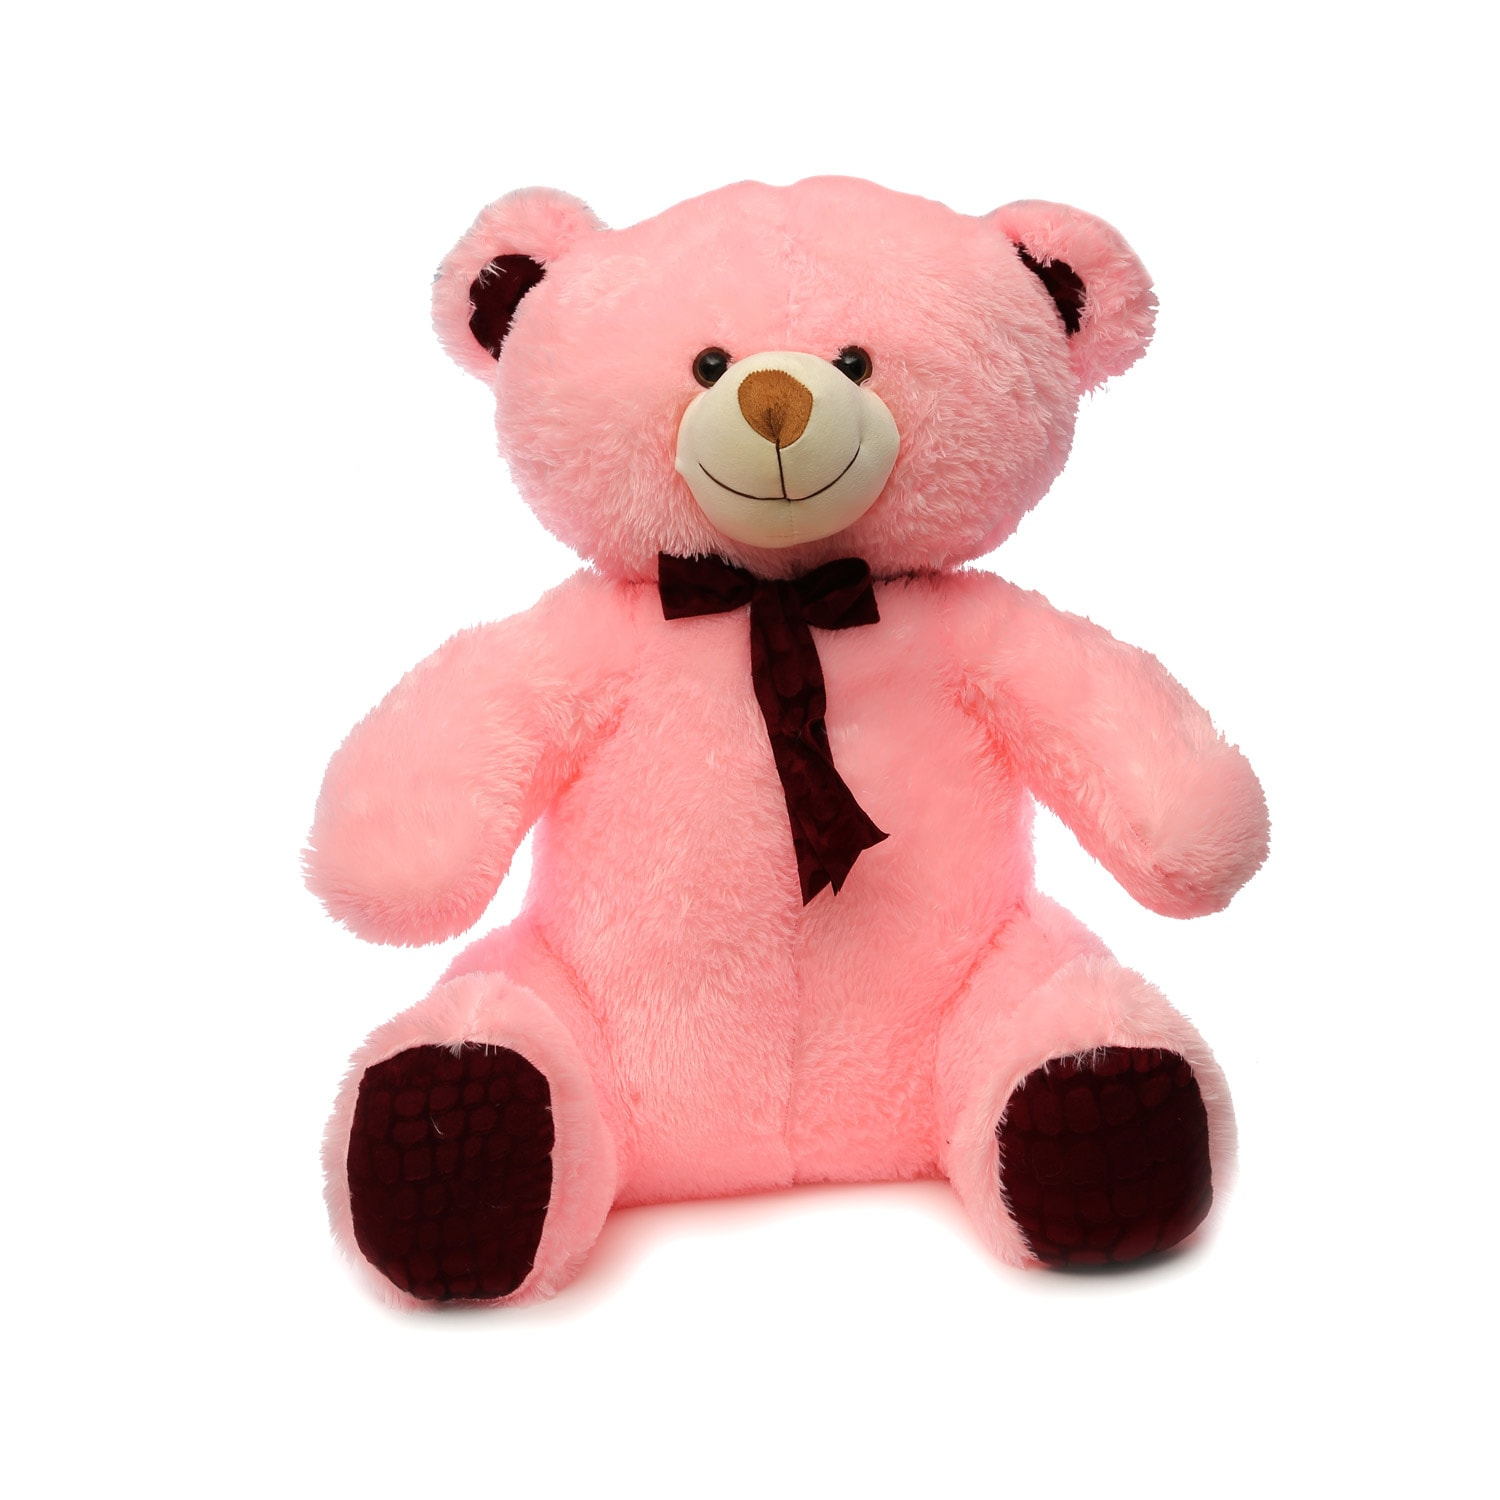 AT-1140 JUMBO SITTING TEDDY 75CMS PINK